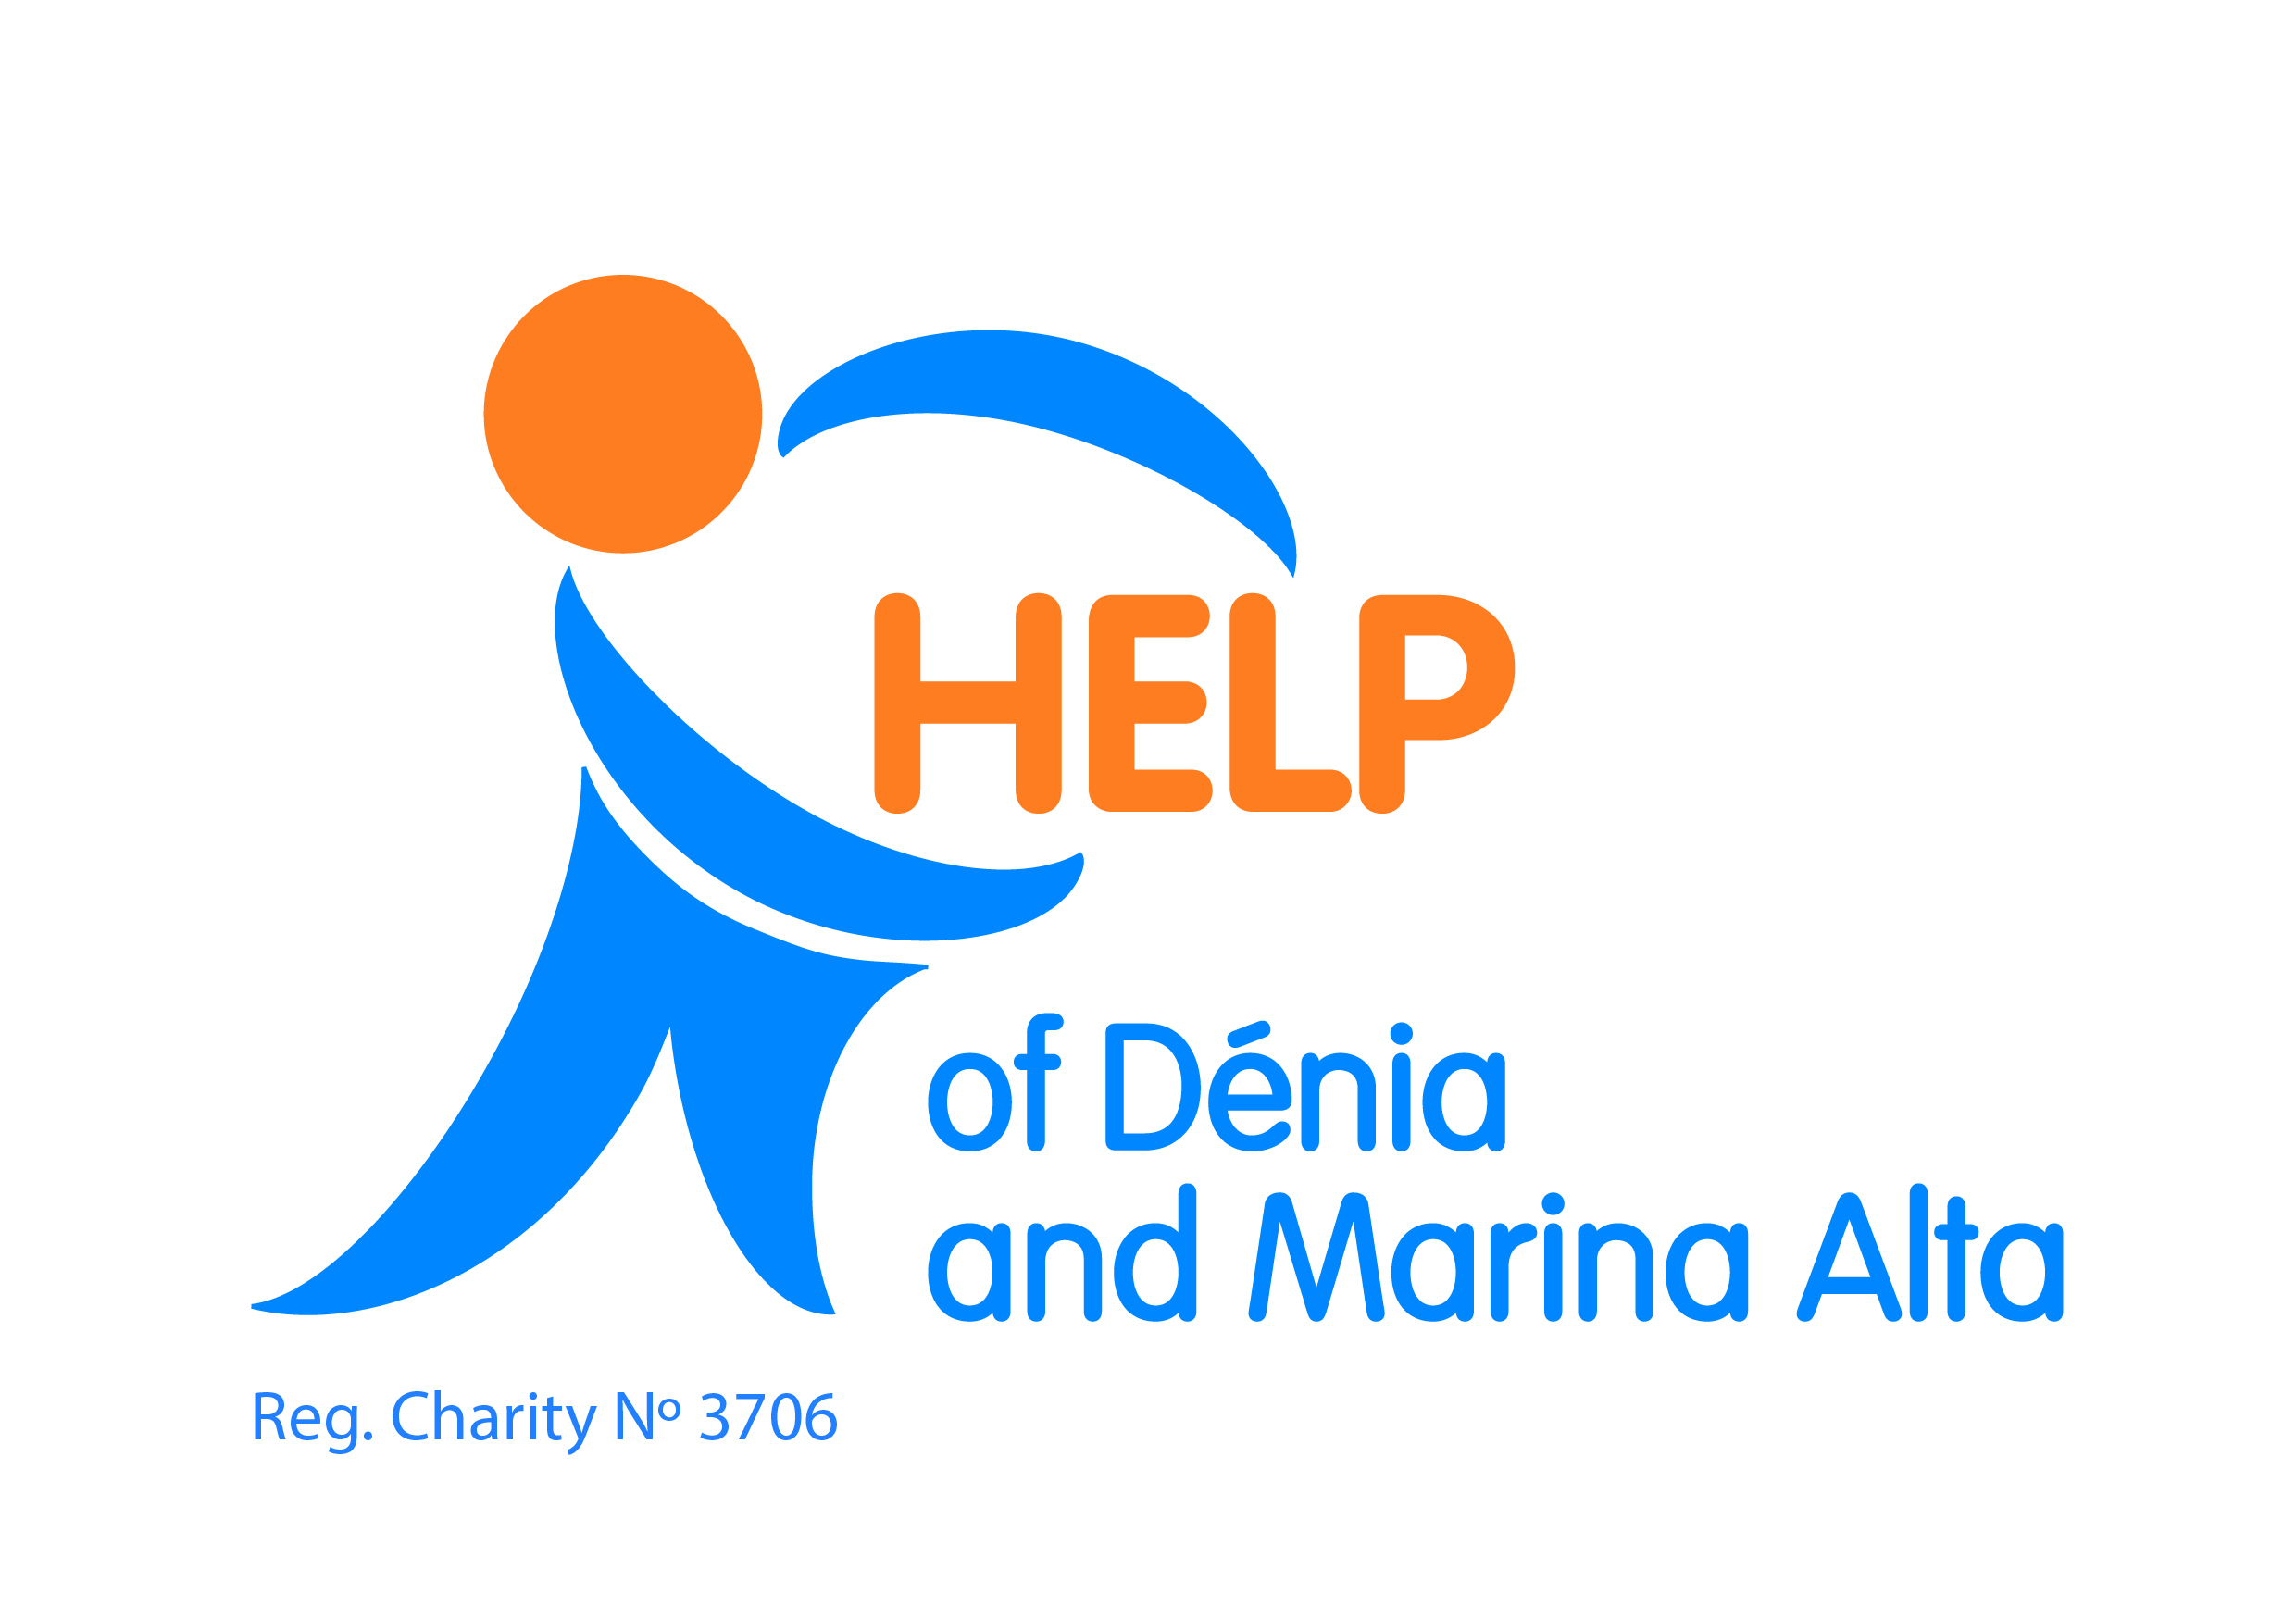 Fundraise for Help of Denia and Marina Alta